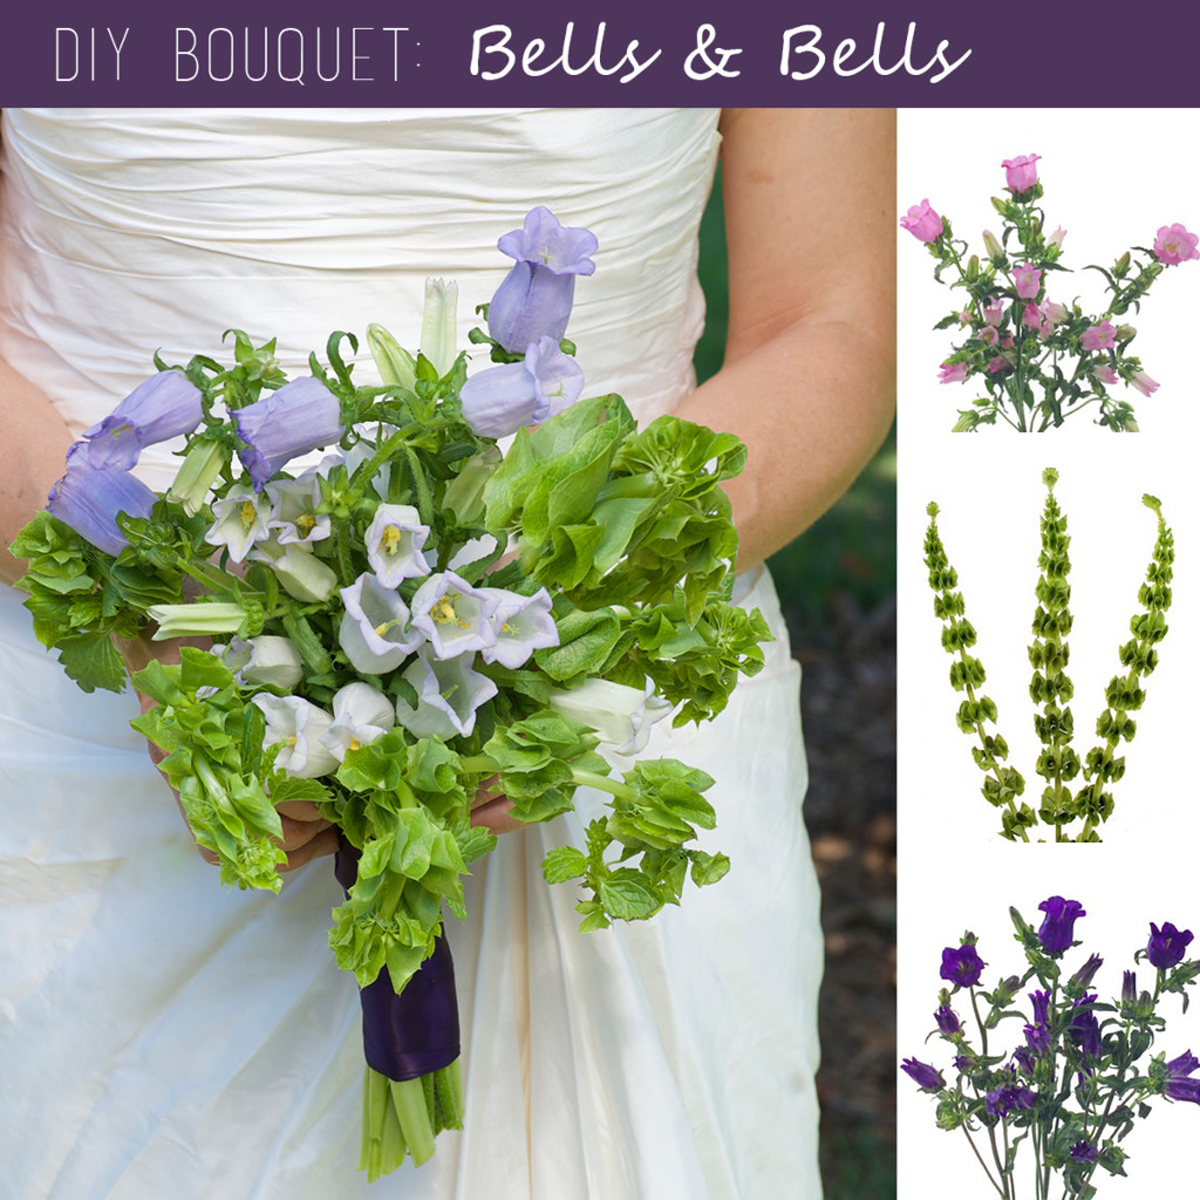 Wedding Bouquets Diy Diy Wedding Bouquet Canterbury Bells And Bells Of Ireland